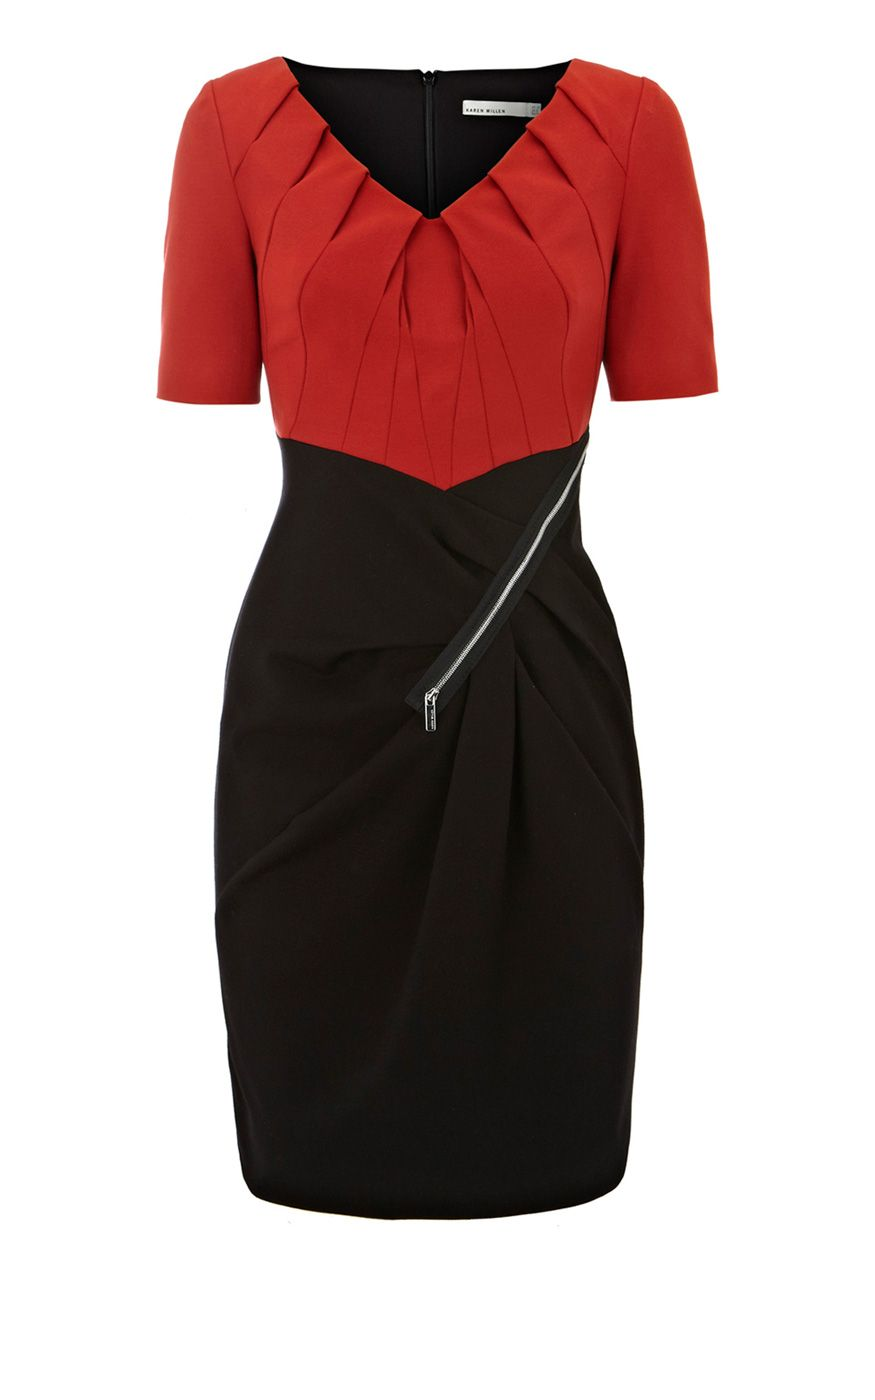 Karen Millen Colour Block mini Dress red and Black ,fashion karen millen outlet